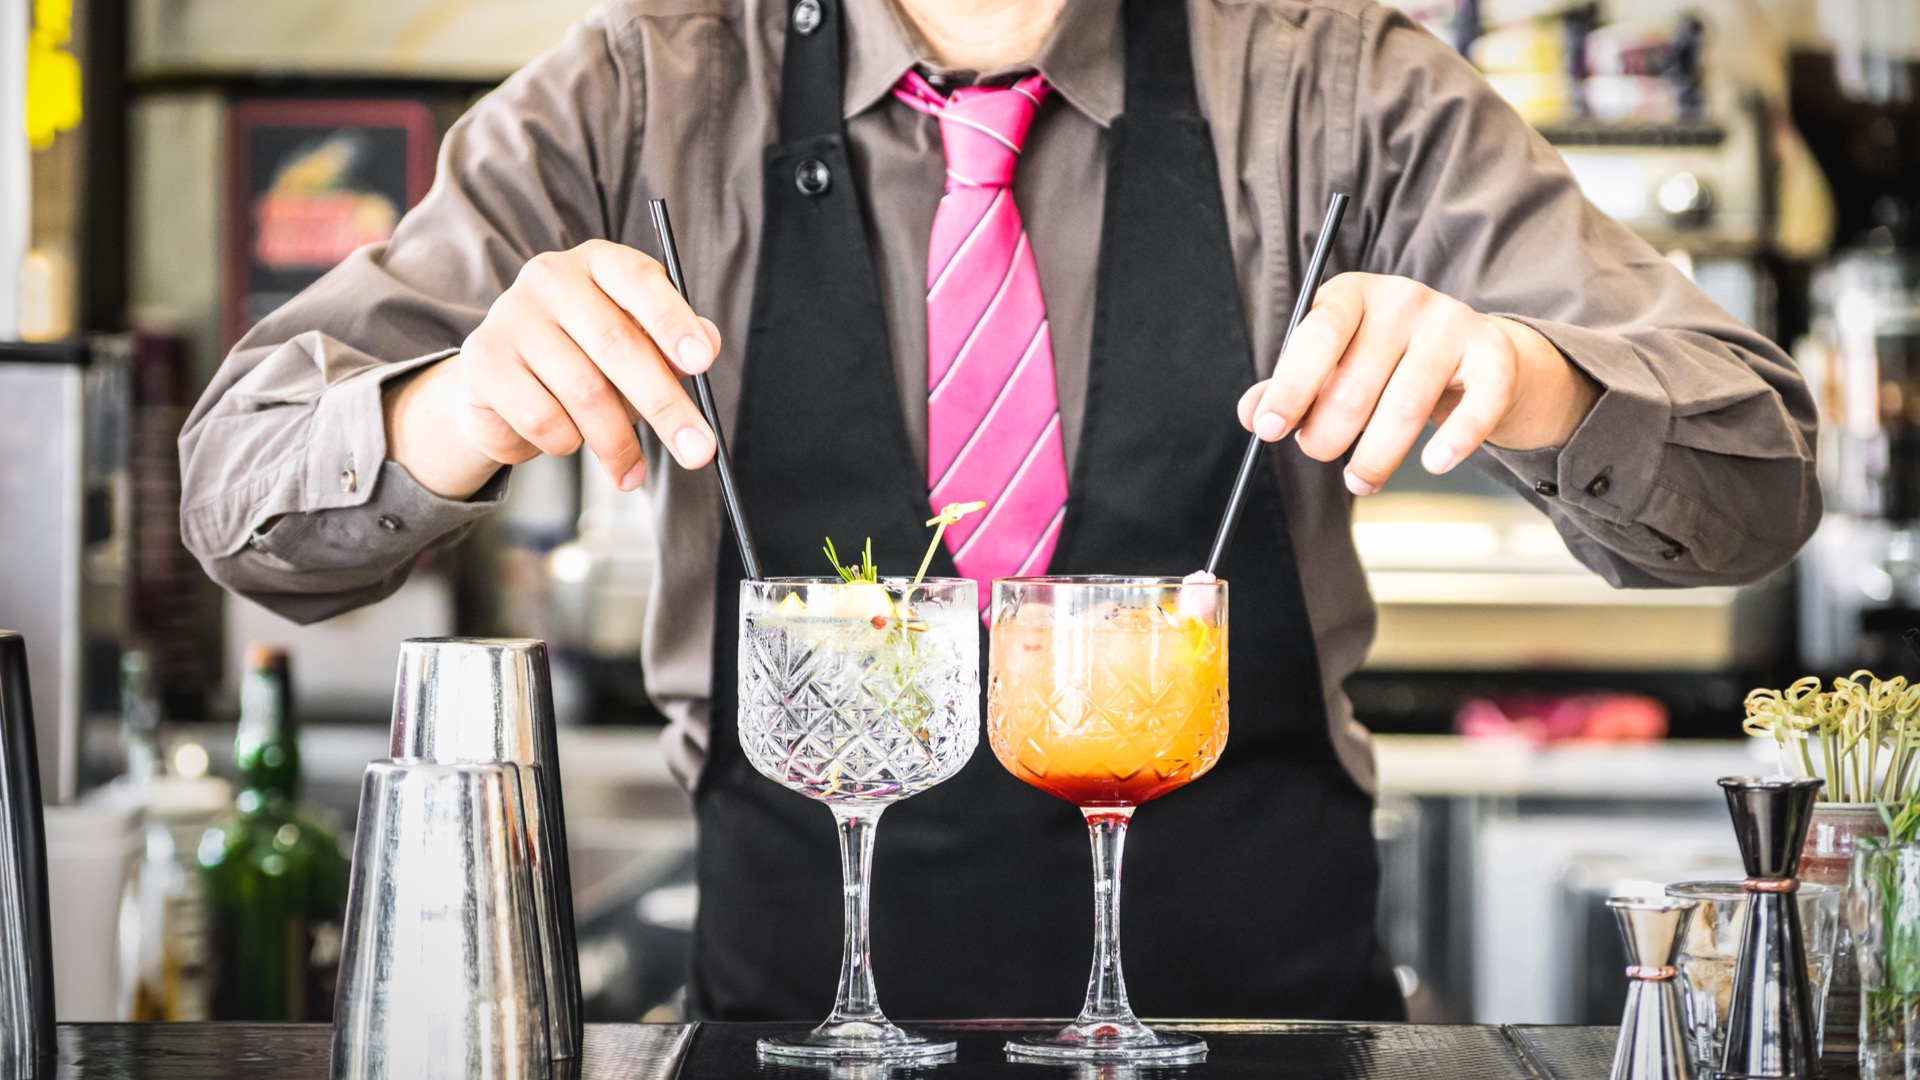 Classic bartender serving a gin and tonic and a tequila sunrise | Baltimore's speakeasies